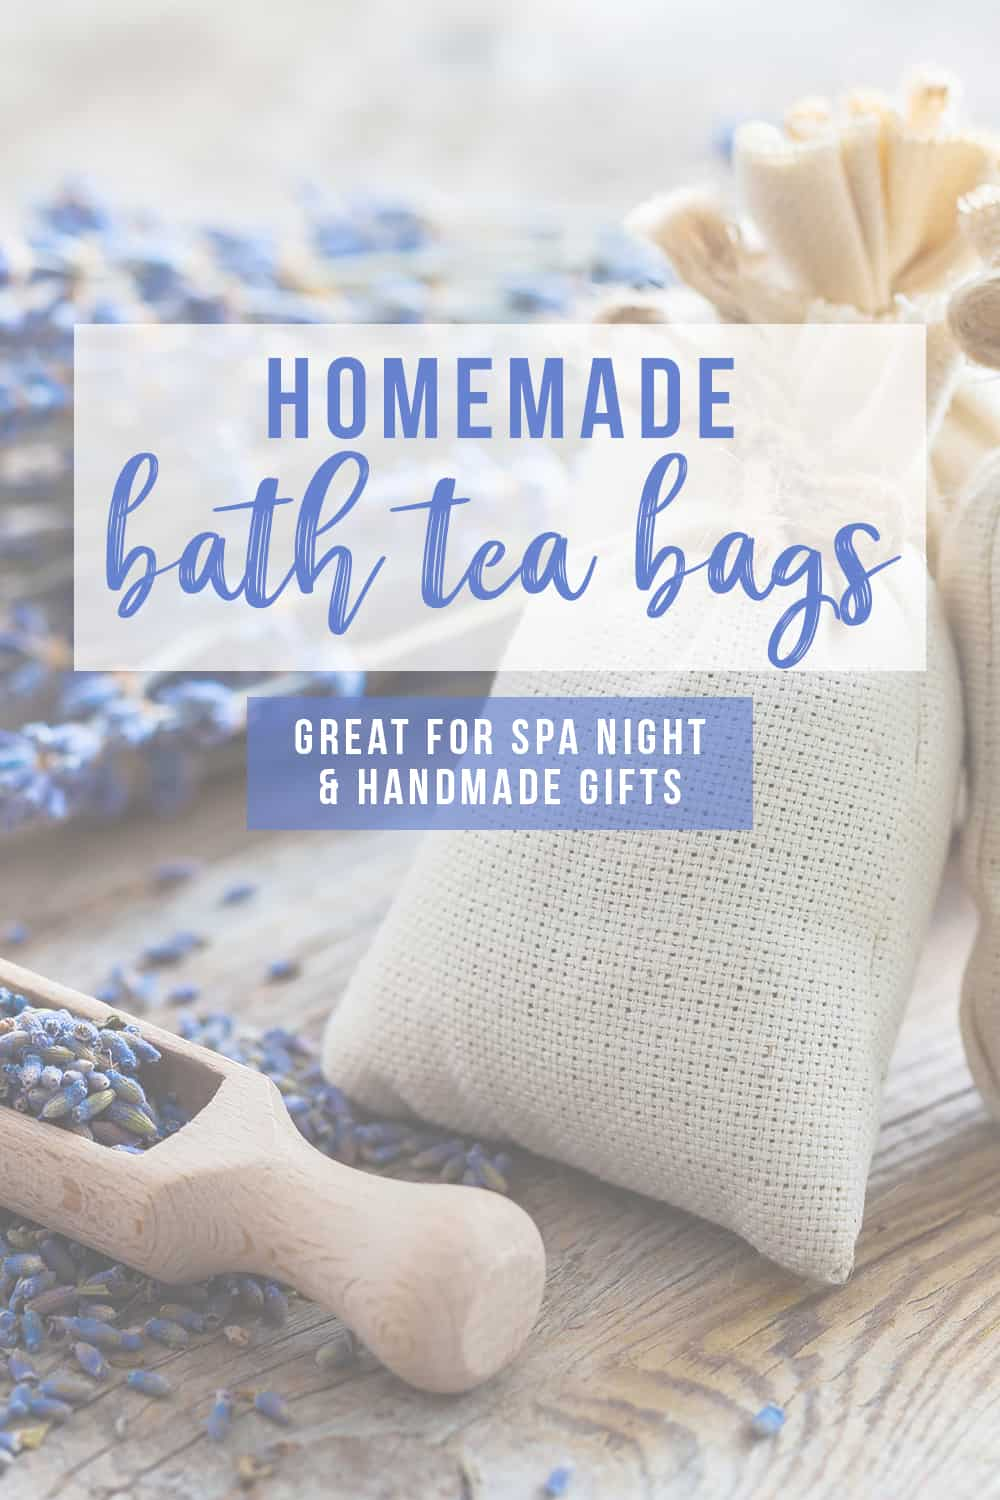 Want to have the most soothing bath of your life? Check out these tub tea ideas! Learn how to make tea baths and how to choose the right herbs for your homemade bath bag. Herbal bath tea pouches will become your go-to relaxing bath with these simple steps and ingredients. #BathTea #BathBag #HomemadeBathProducts #DIYBath #DIYBathProduct #TubTea #TubTeaIdeas #FlowerBathBag #TeaBath #HerbalRelief #NaturalLiving